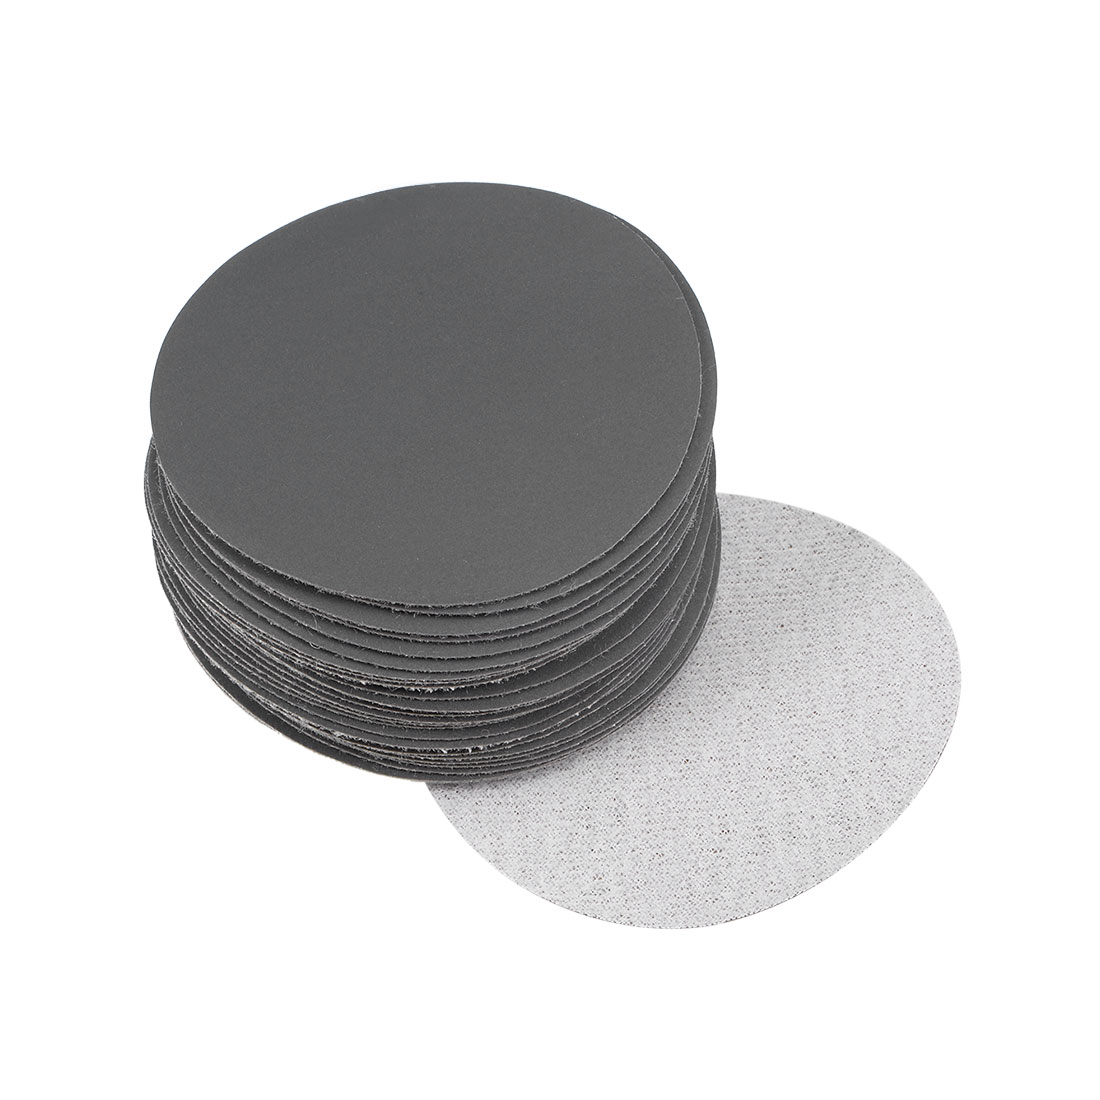 3 inch Wet Dry Discs 800 Grit Hook and Loop Sanding Disc Silicon Carbide 30pcs